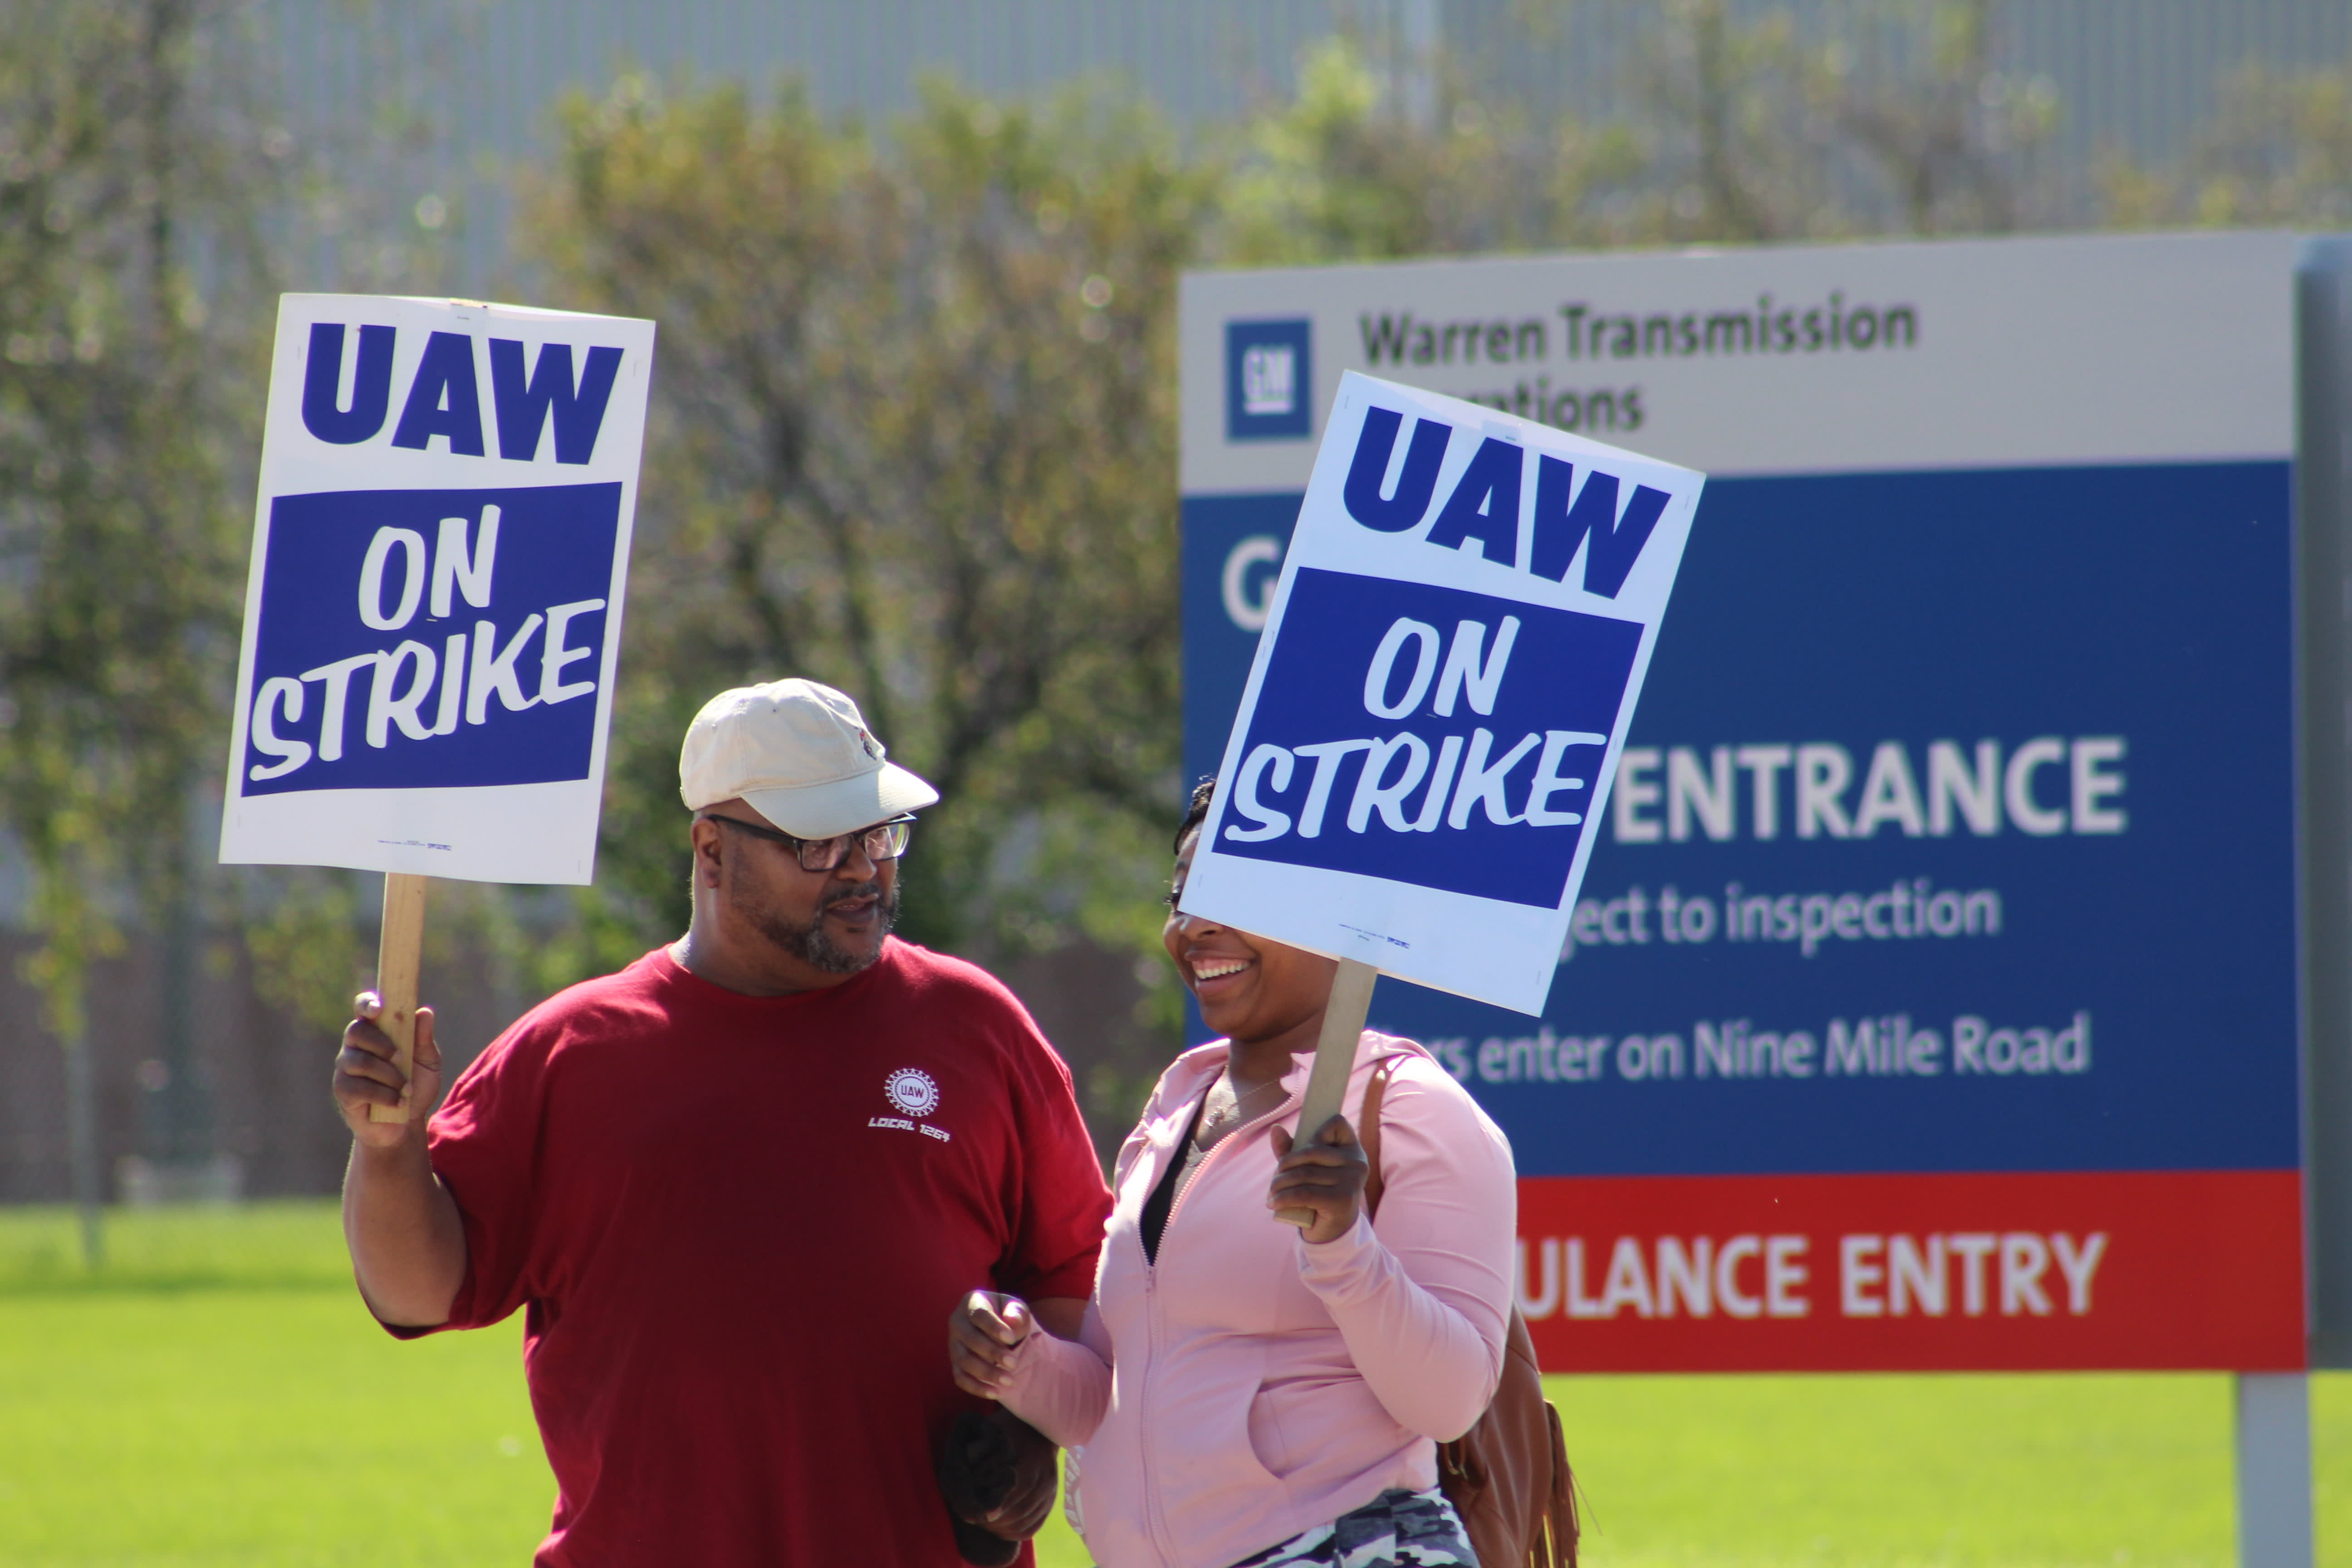 GM furloughs 1,200 additional US and Canadian workers as UAW strike enters second week